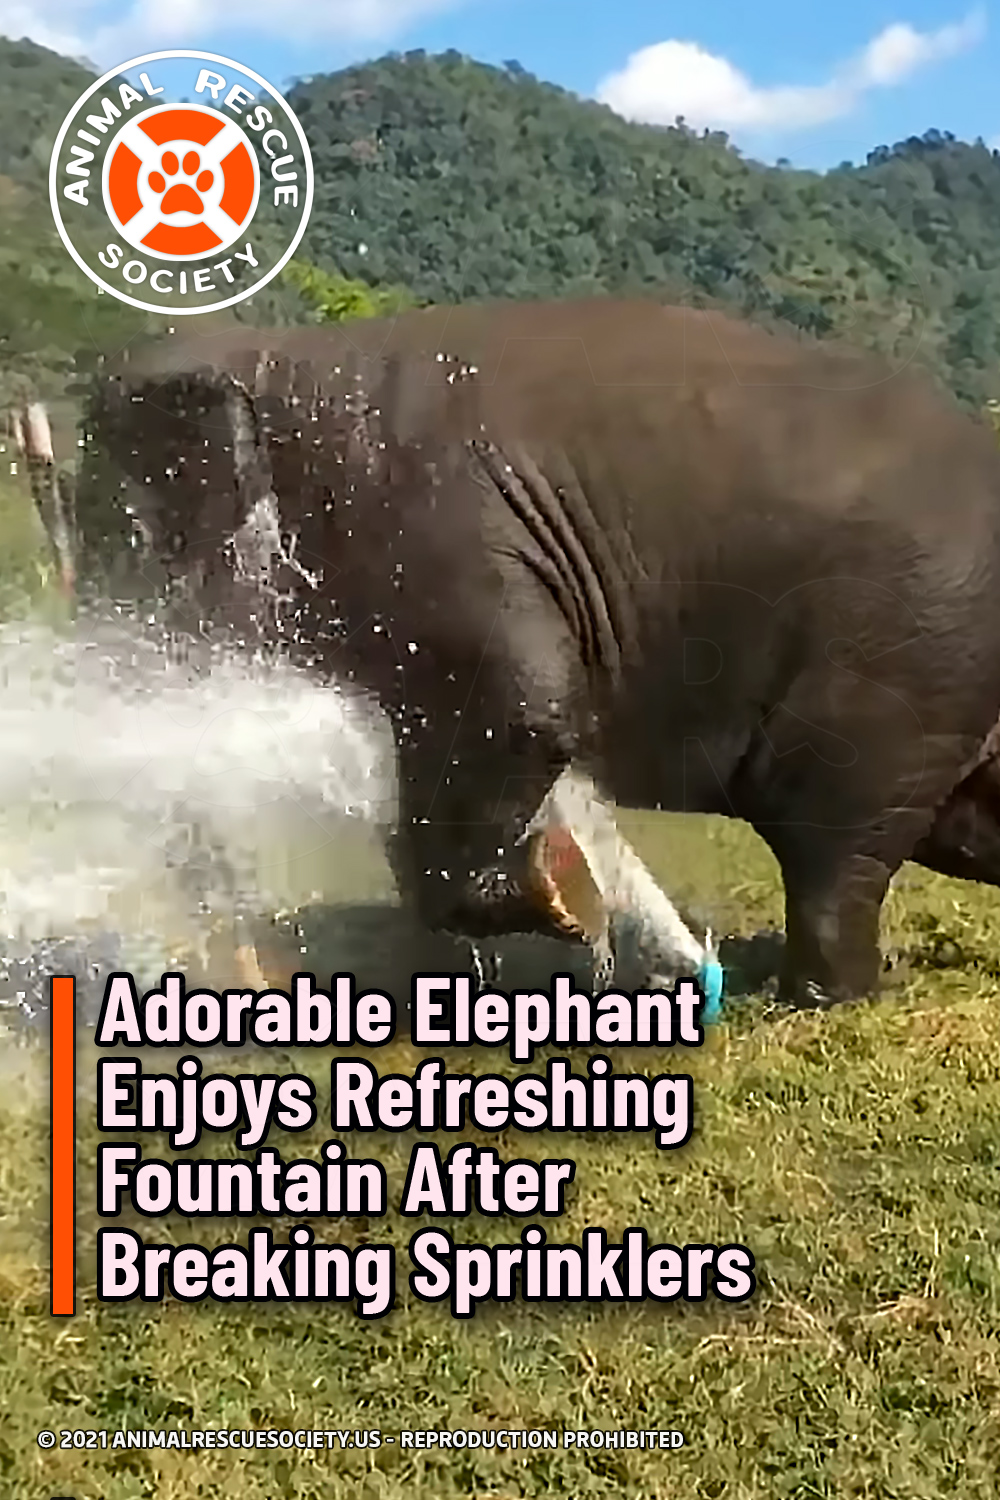 Adorable Elephant Enjoys Refreshing Fountain After Breaking Sprinklers